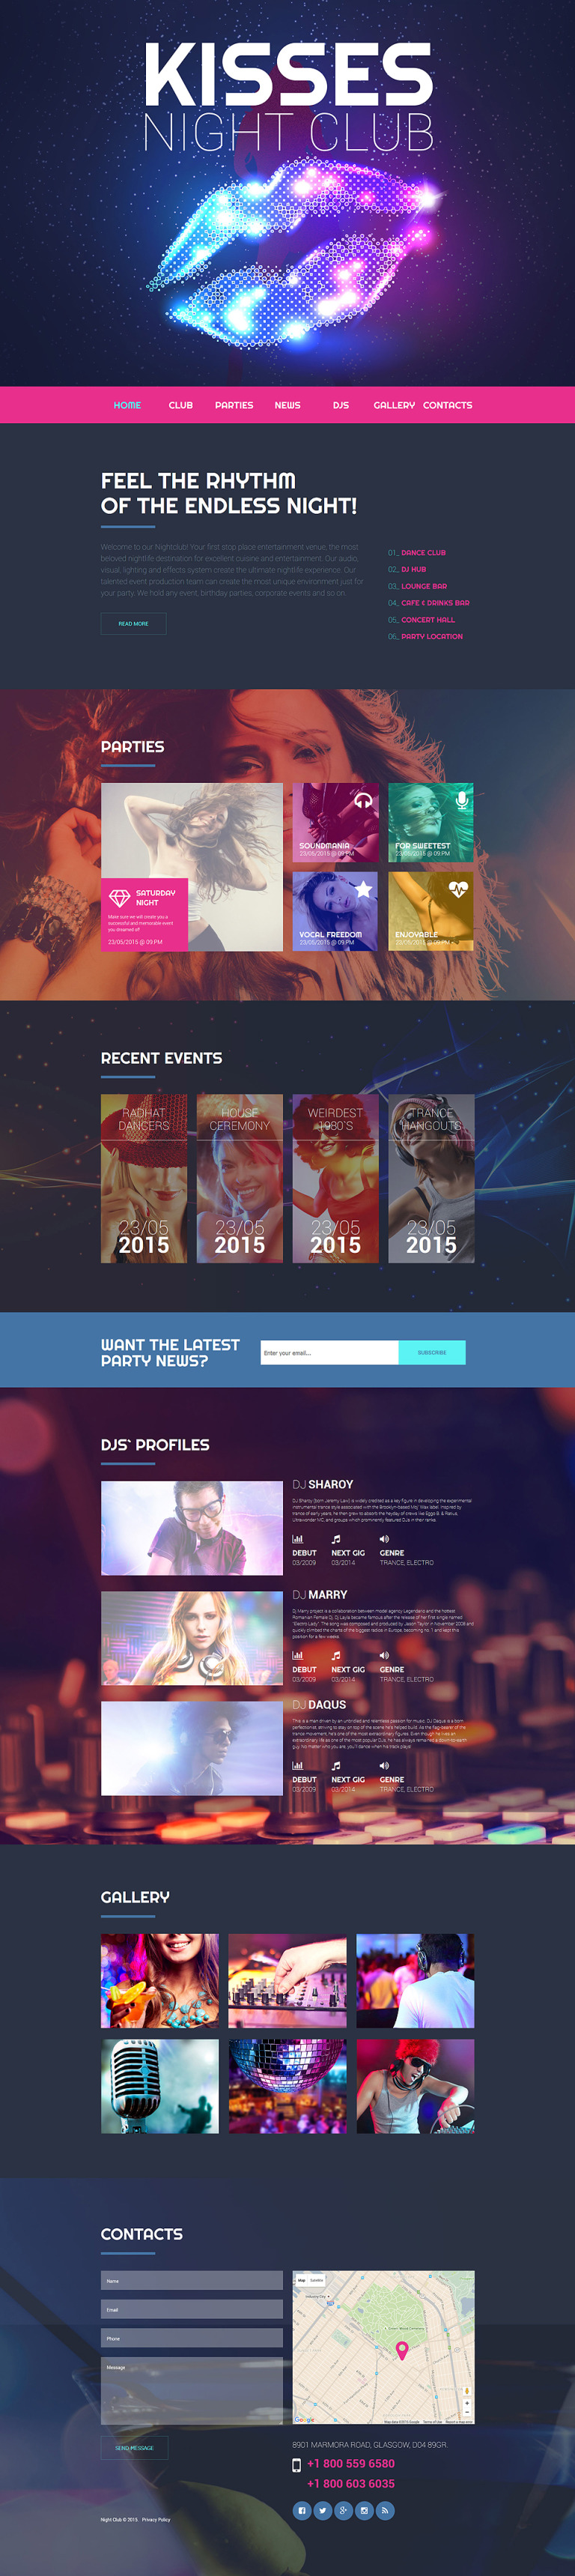 Nighttime Entertainment Website Template New Screenshots BIG